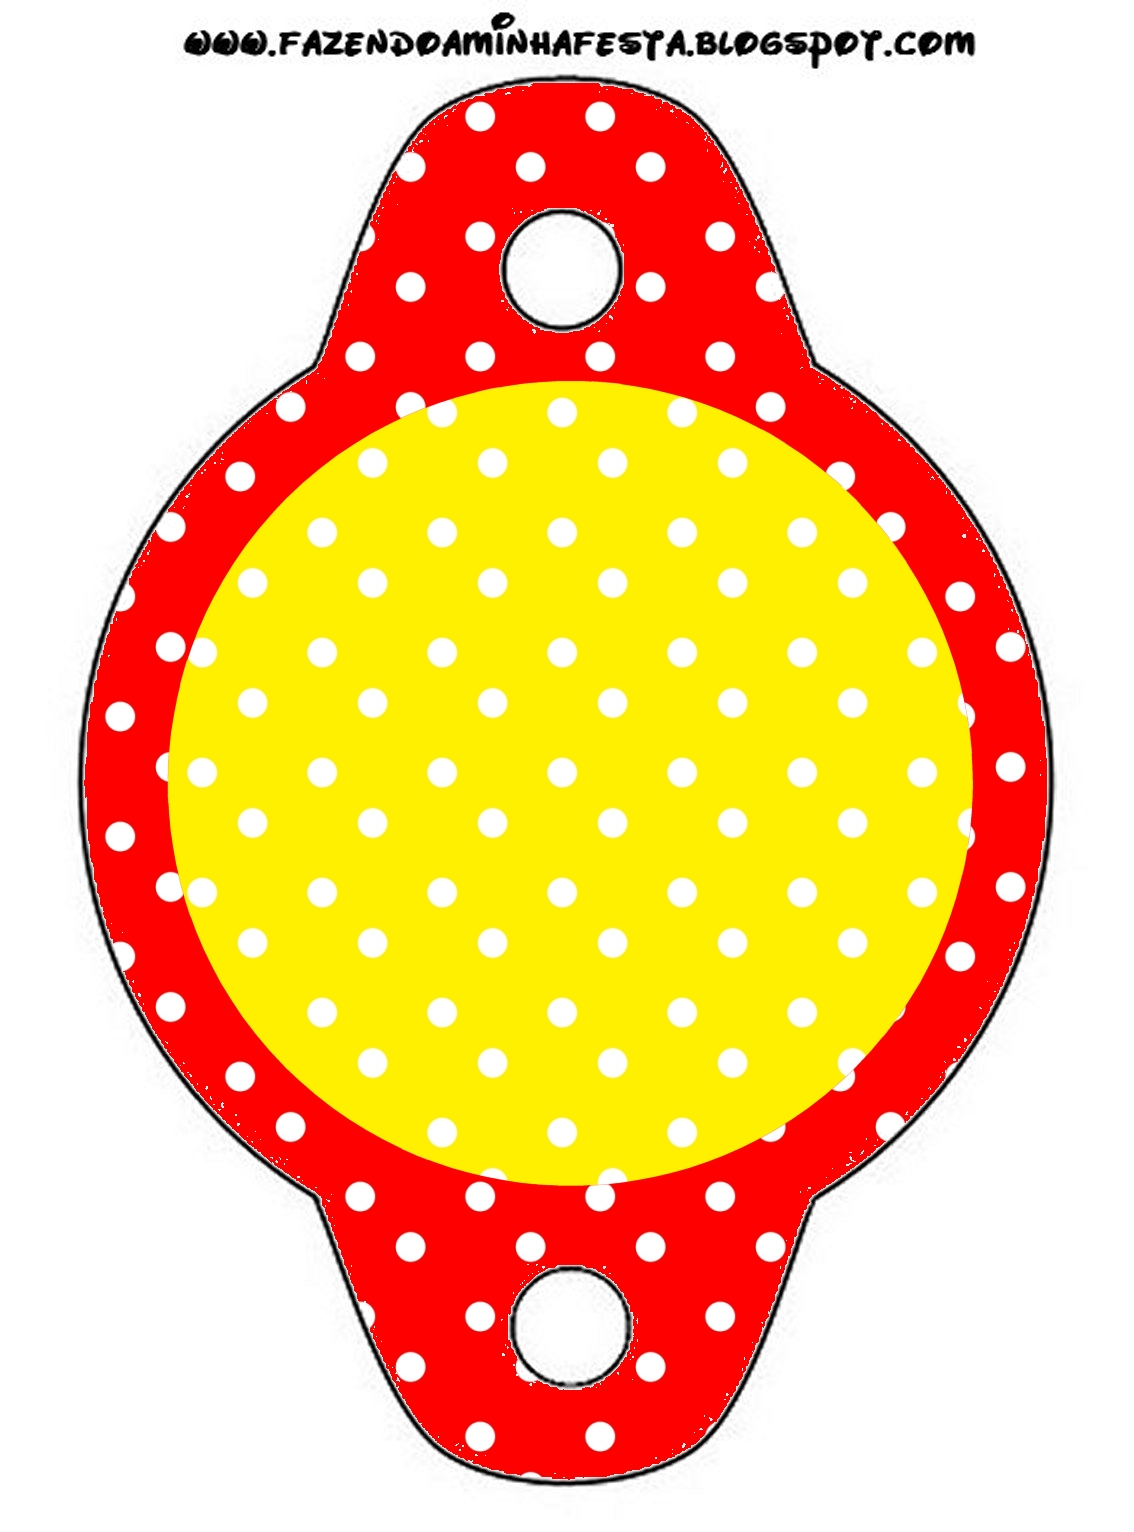 Sweet 16 Red Yellow And Withe Polka Dots: Free Party